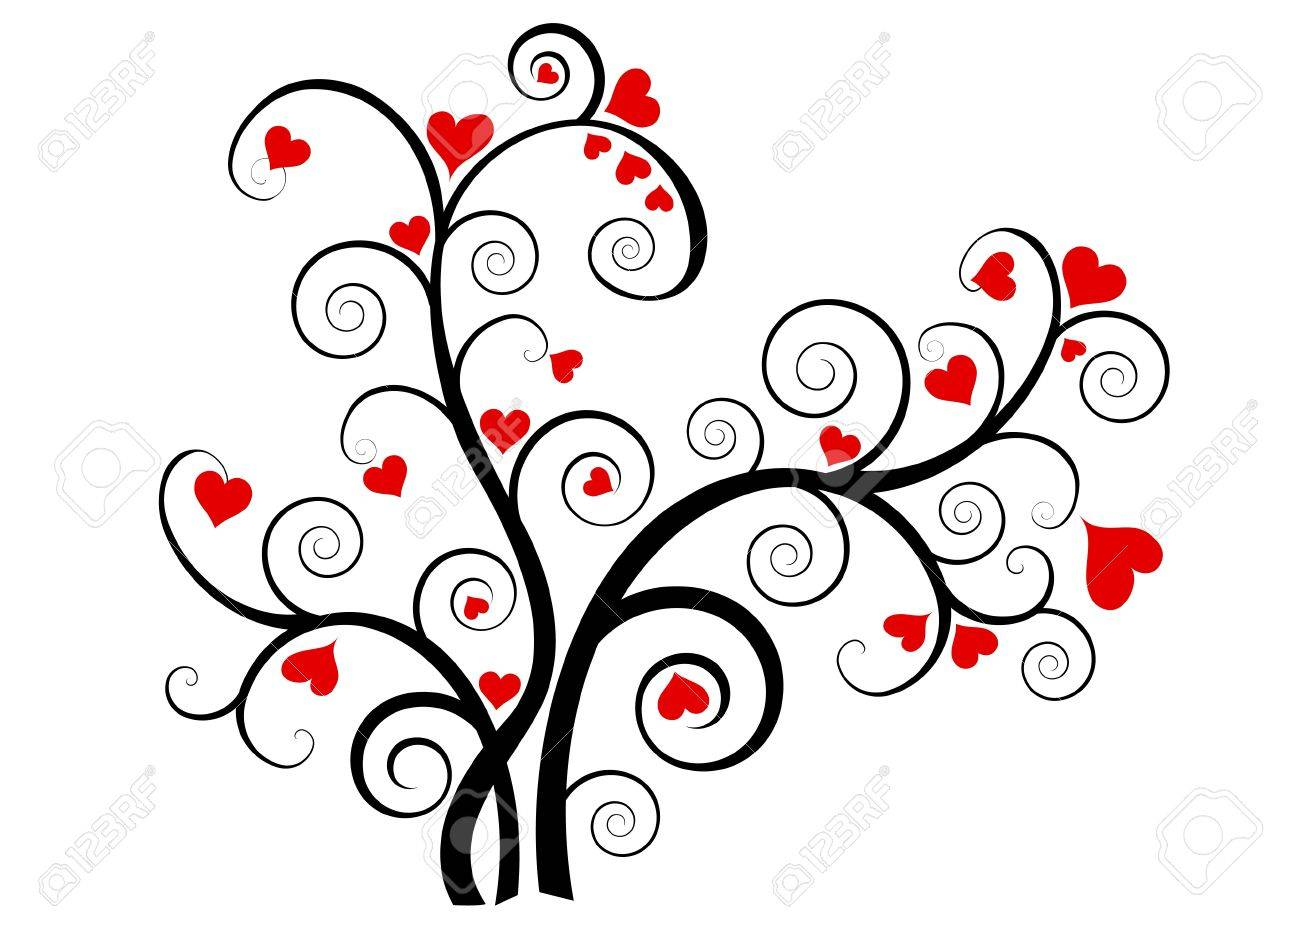 Valentine love tree with red hearts on white background Stock Photo - 11451973